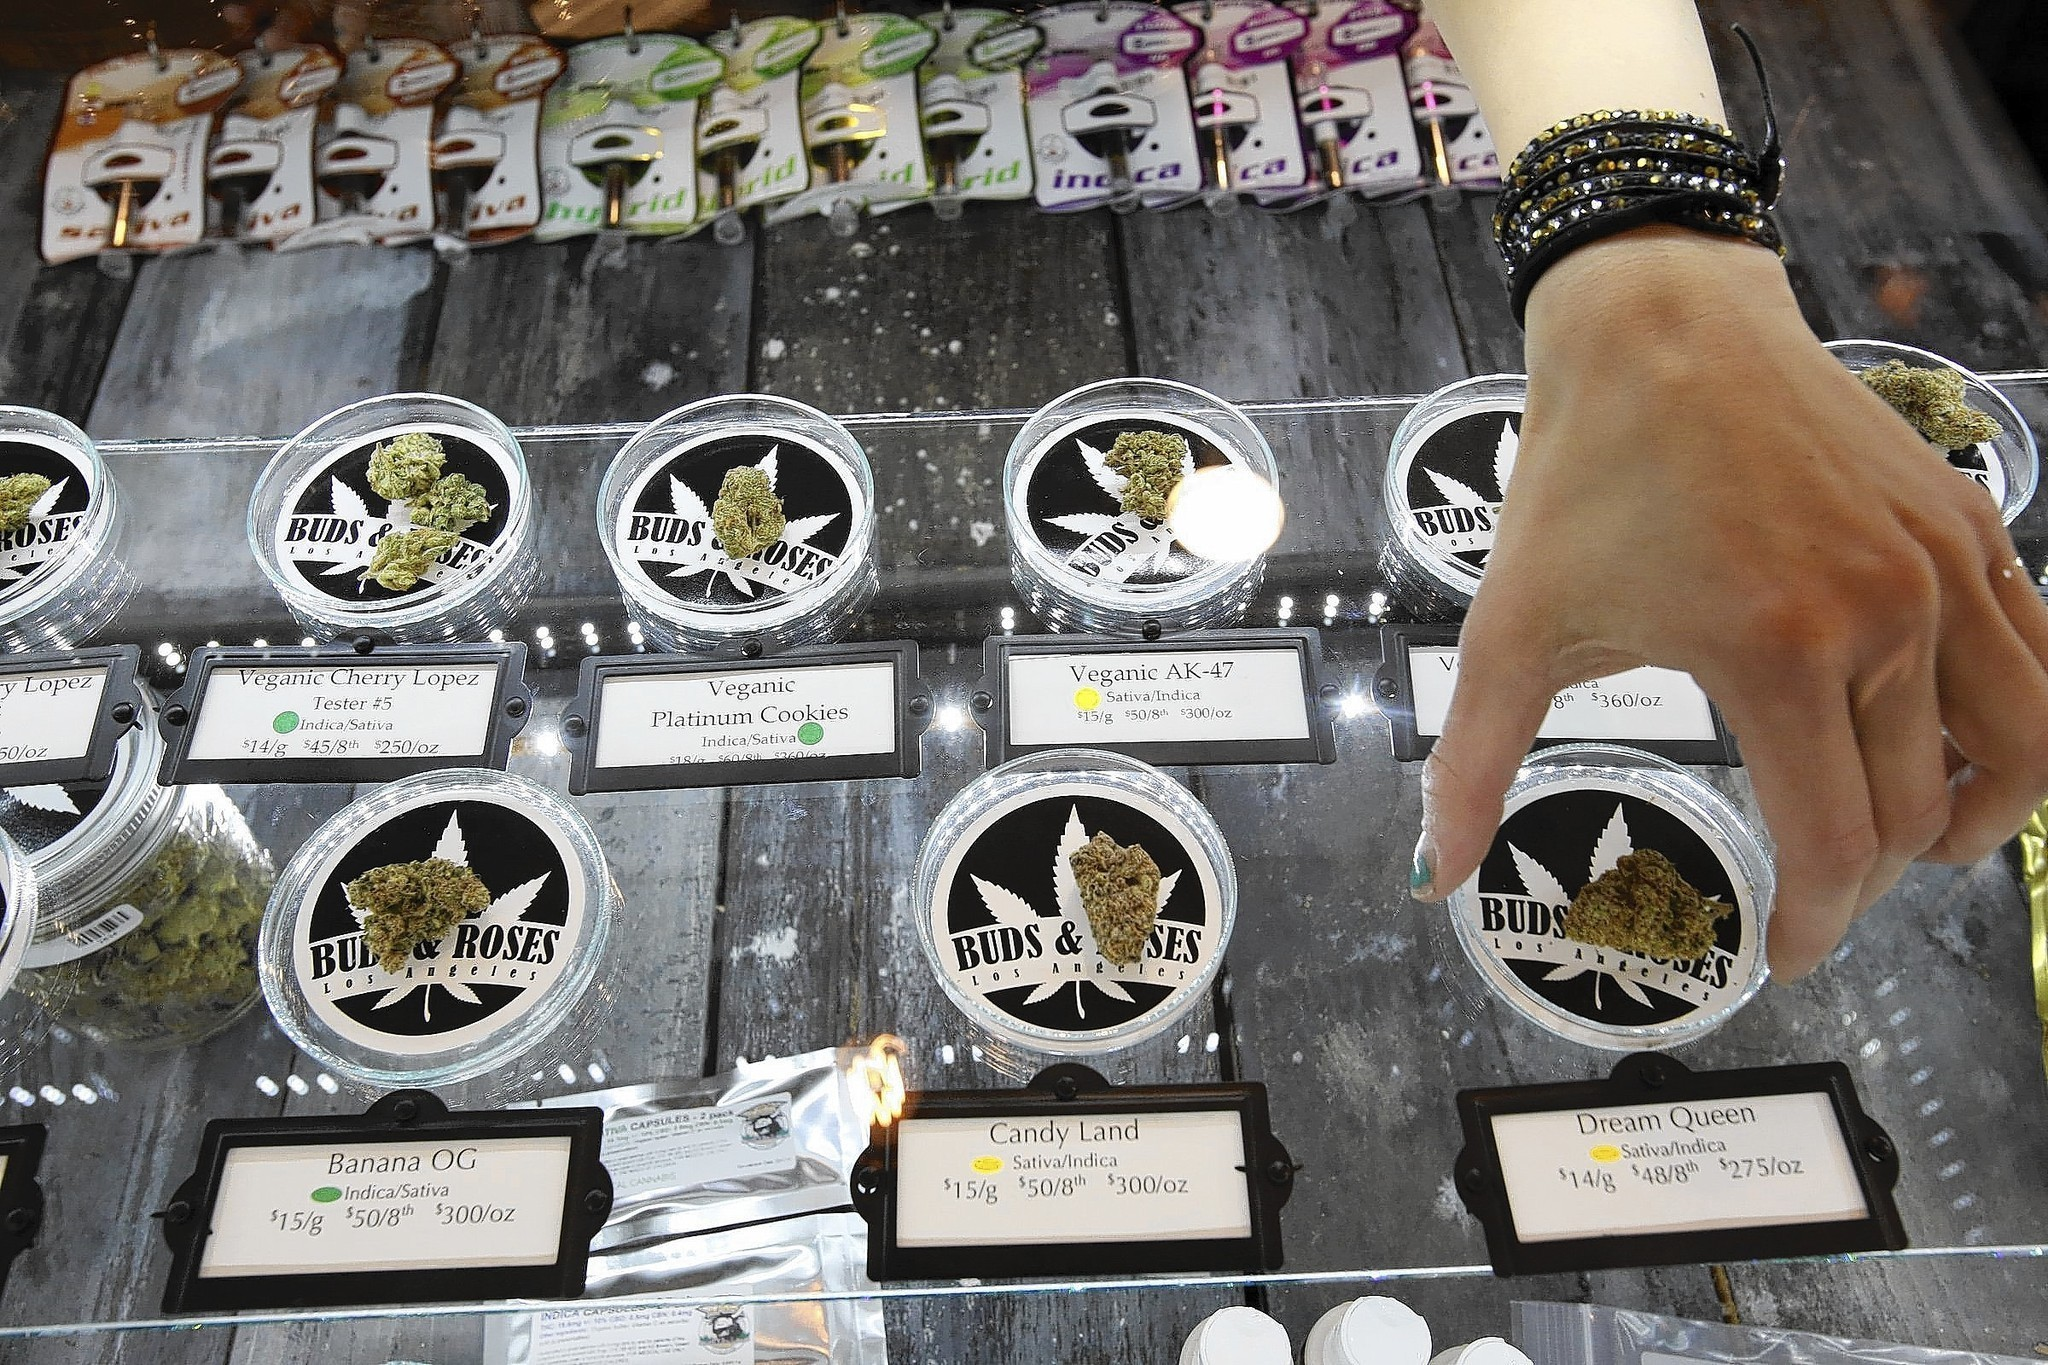 Right brand name gives marijuana strain a higher value